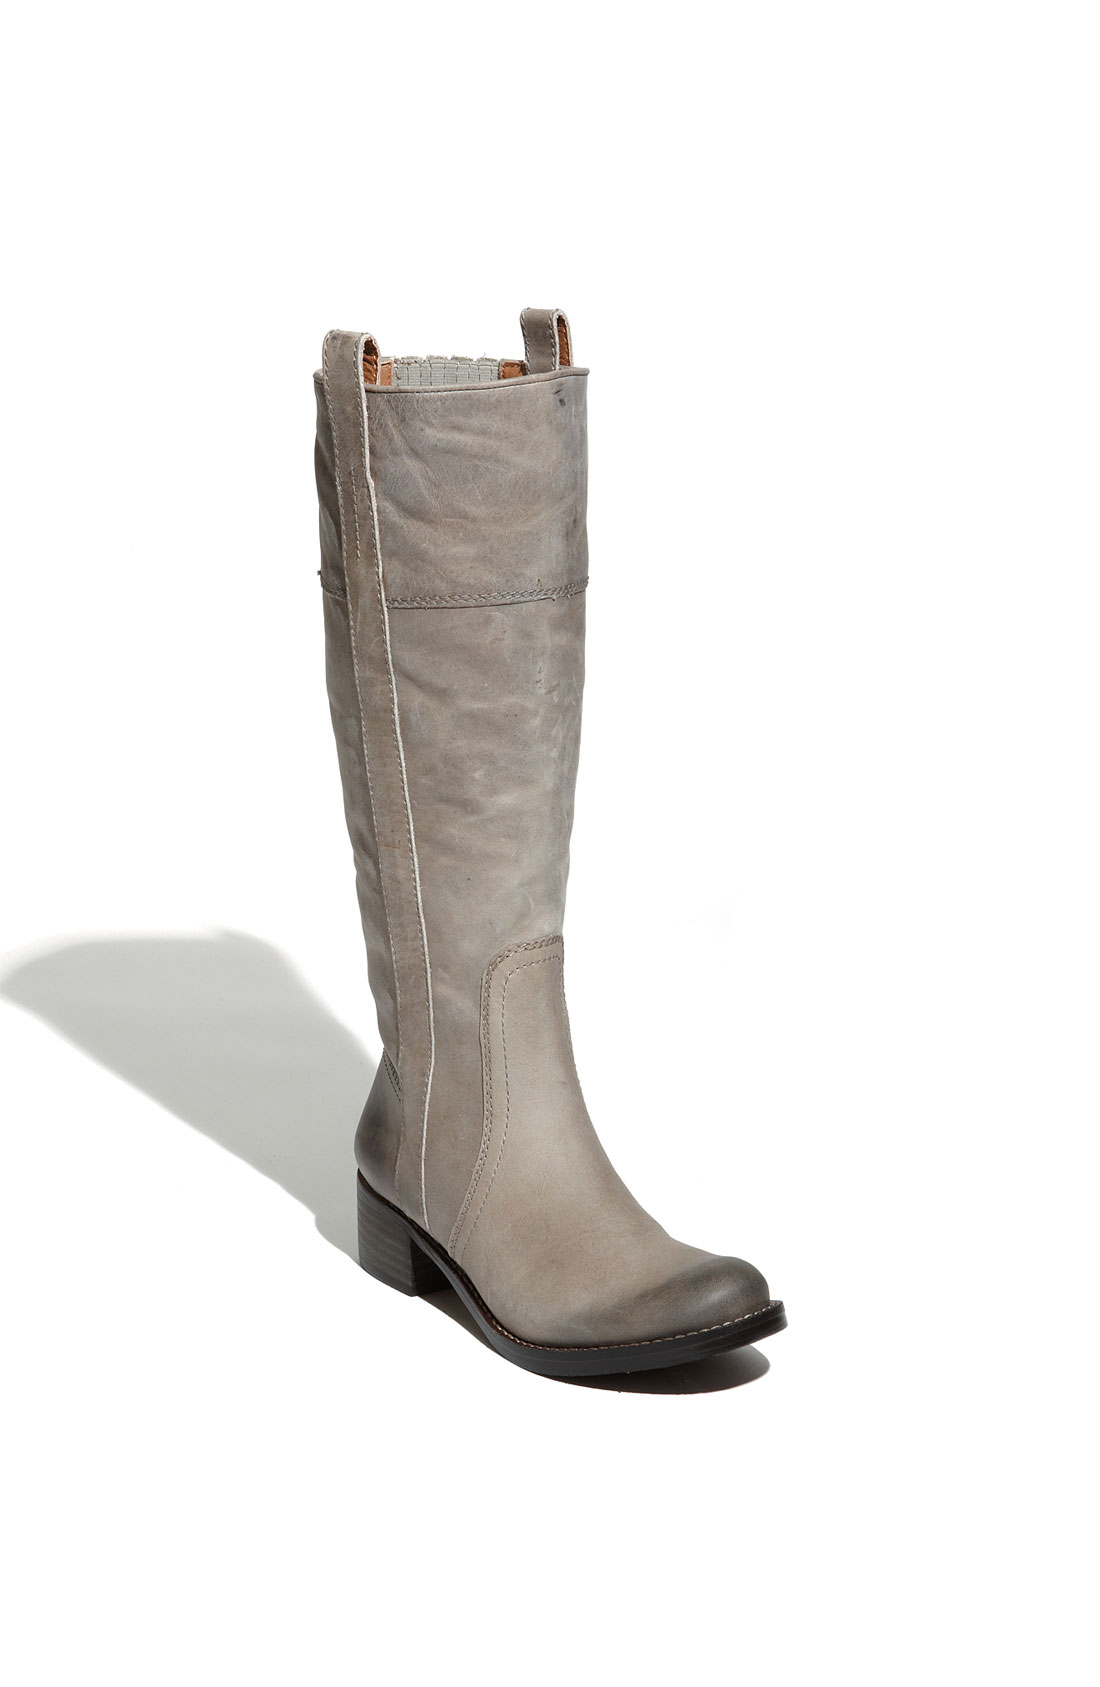 lucky brand hibiscus leather boots in silver light